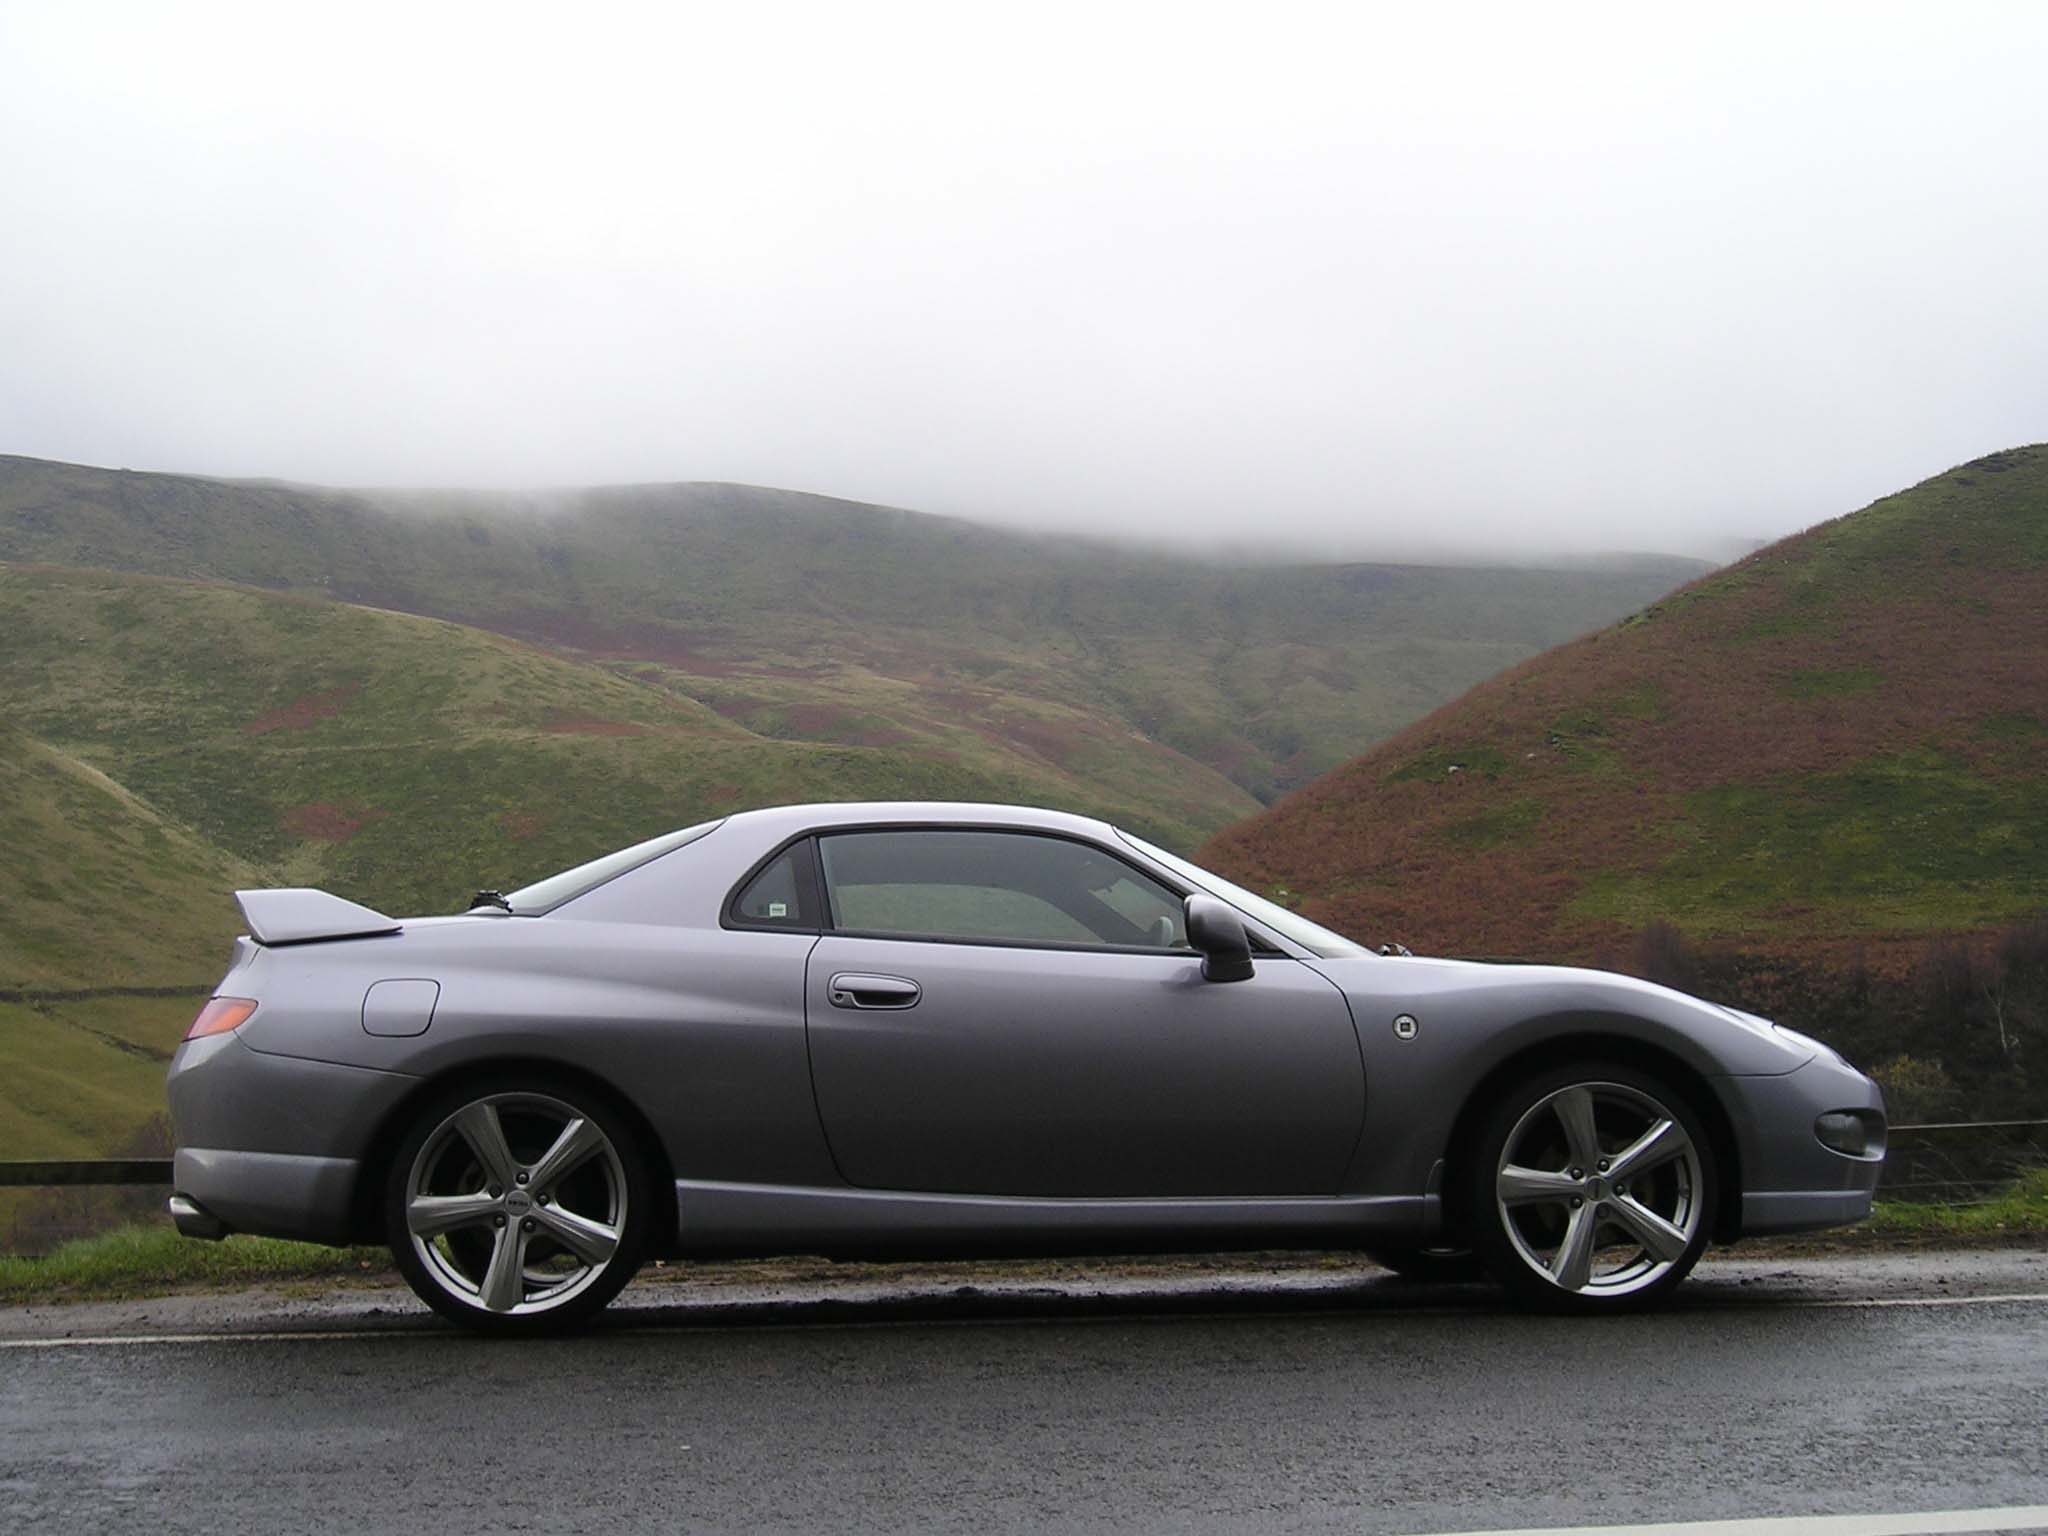 mitsubishi fto - myfto co uk